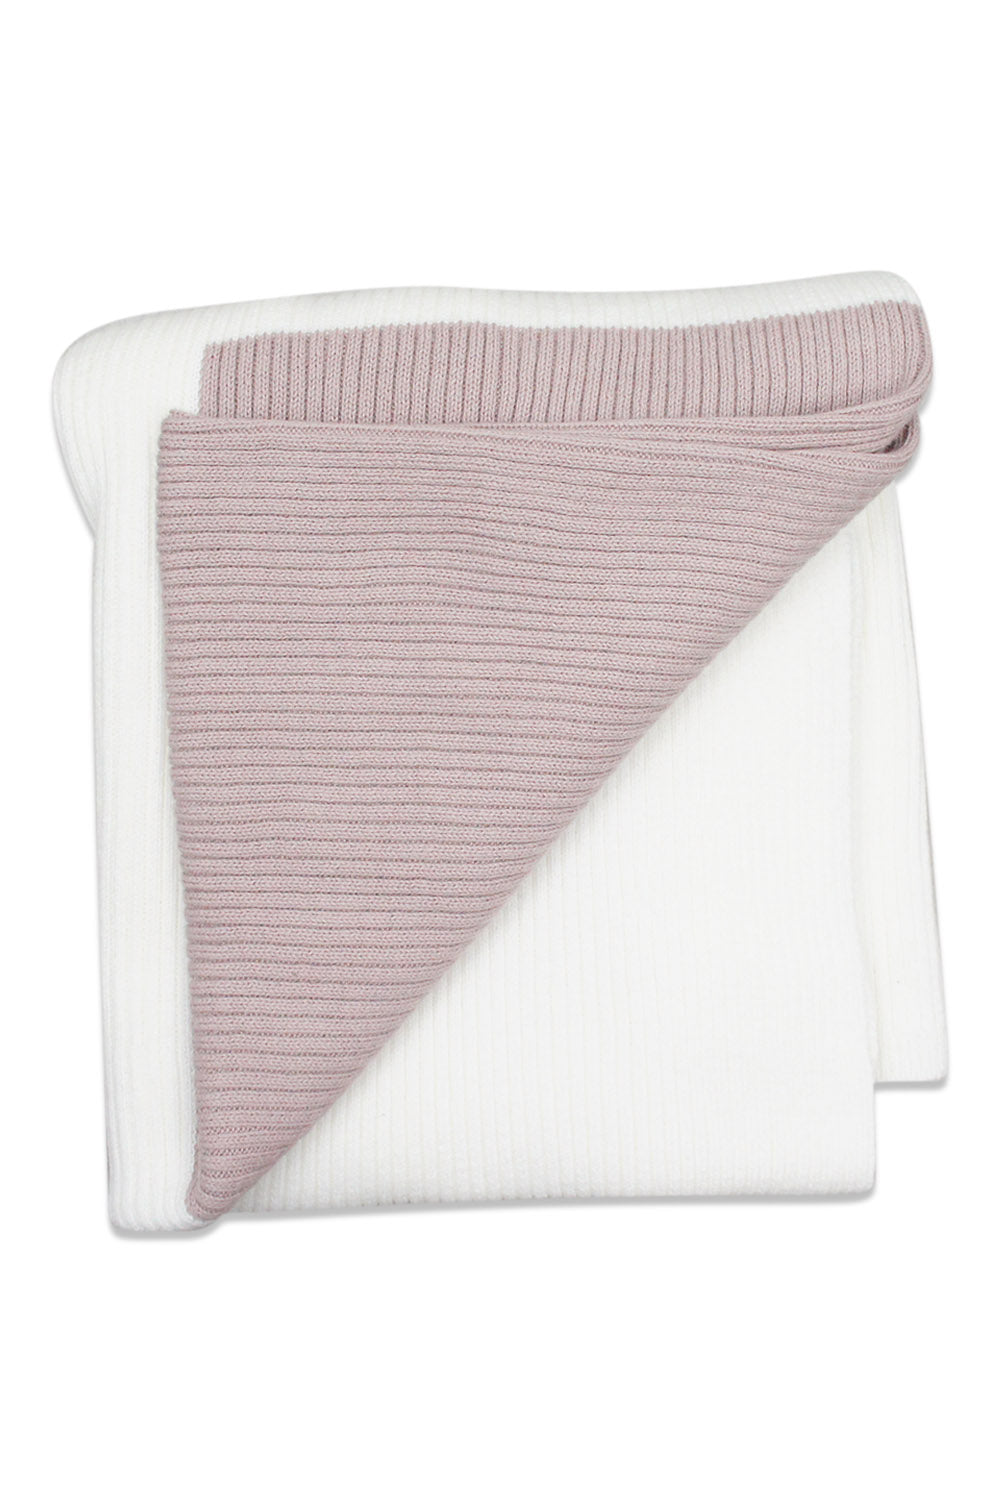 Kipp Mauve Colorblock Blanket